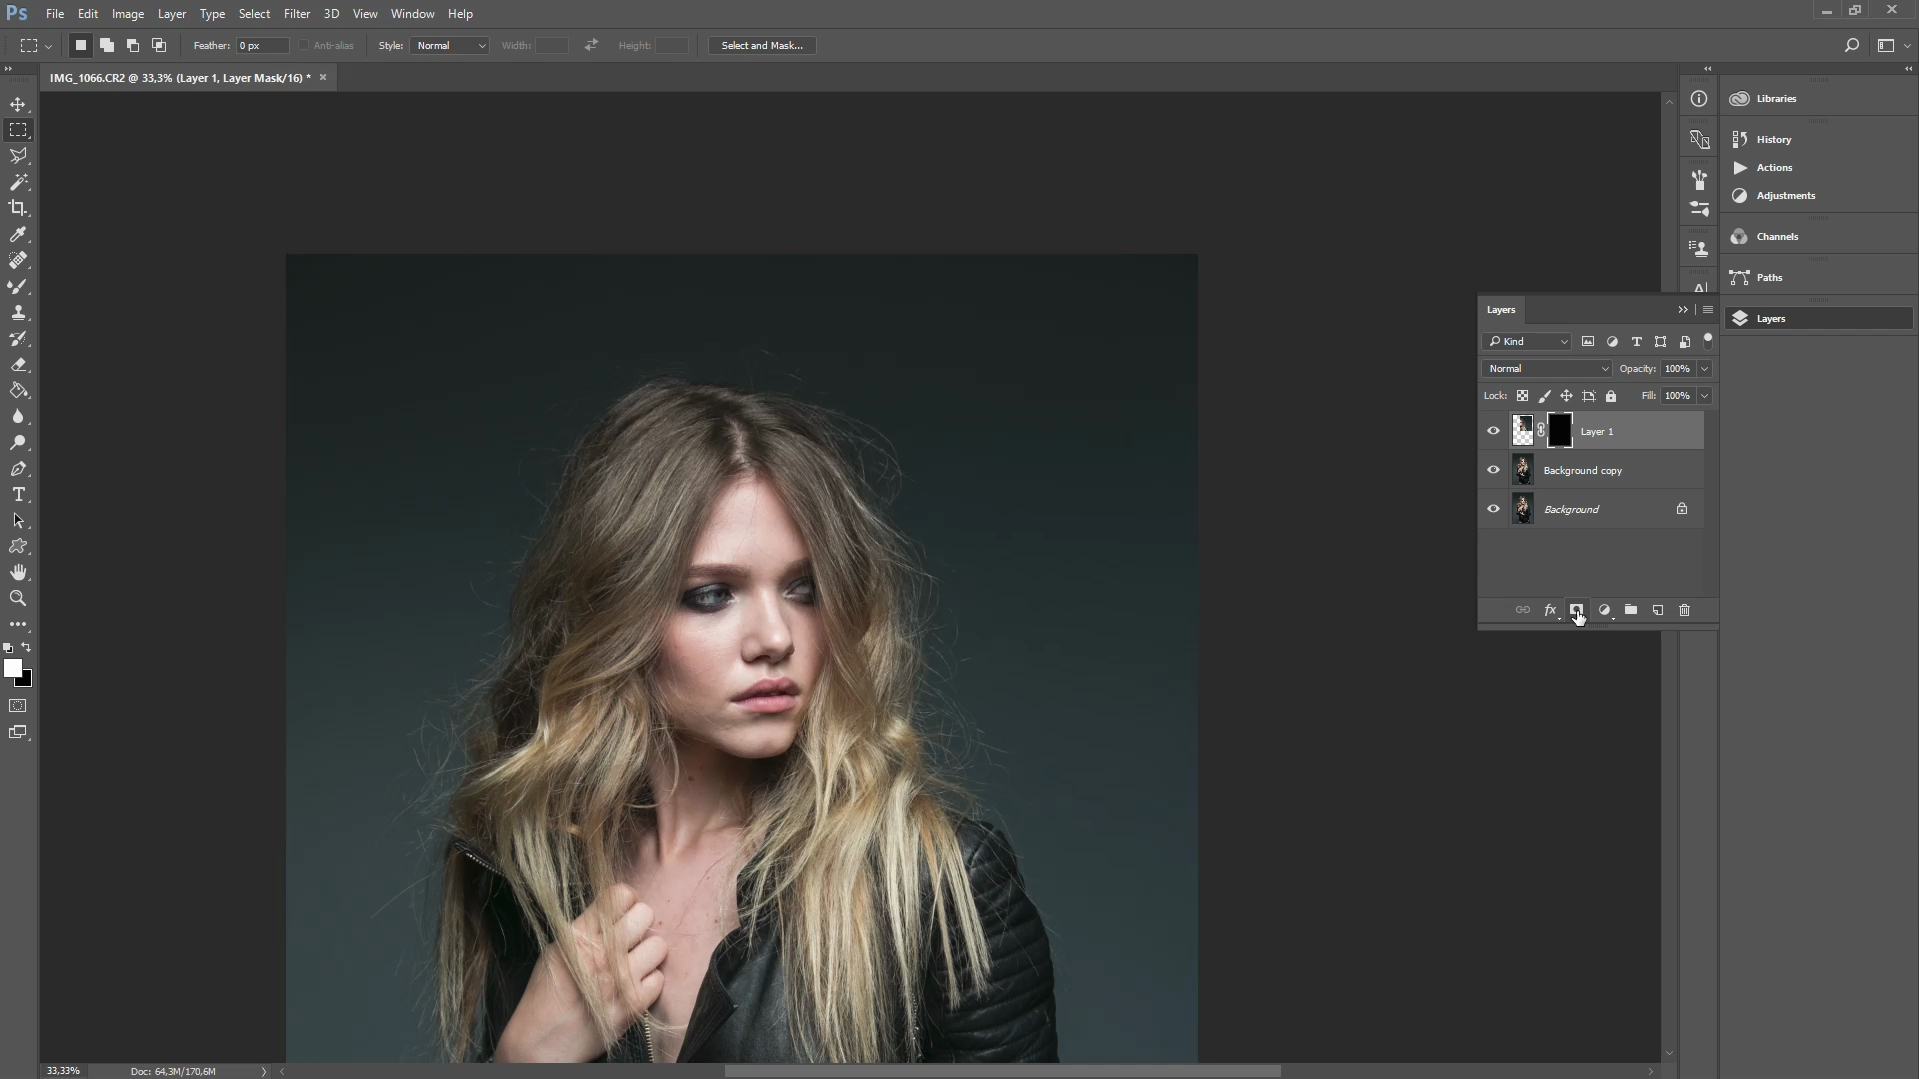 how to remove stray hairs on face in photoshop